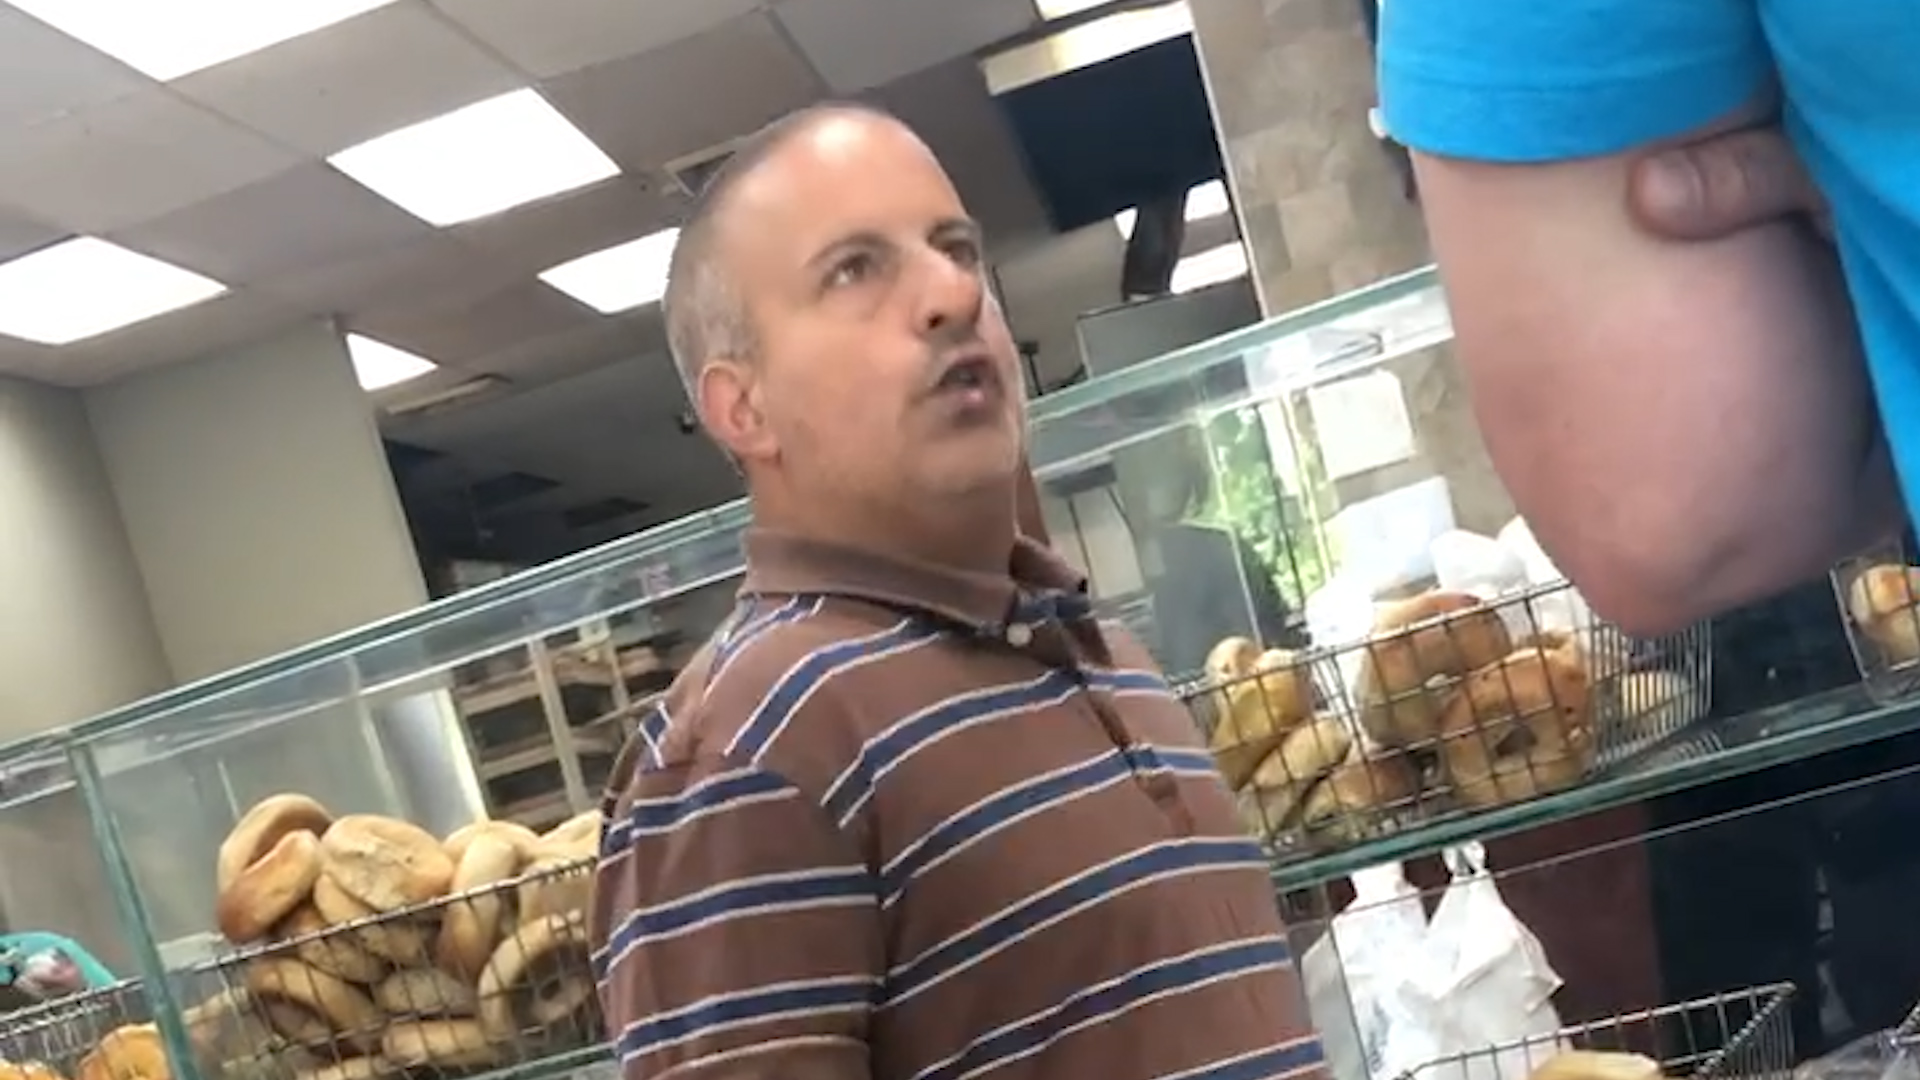 The Bagel Boss Chris Morgan got into another fight